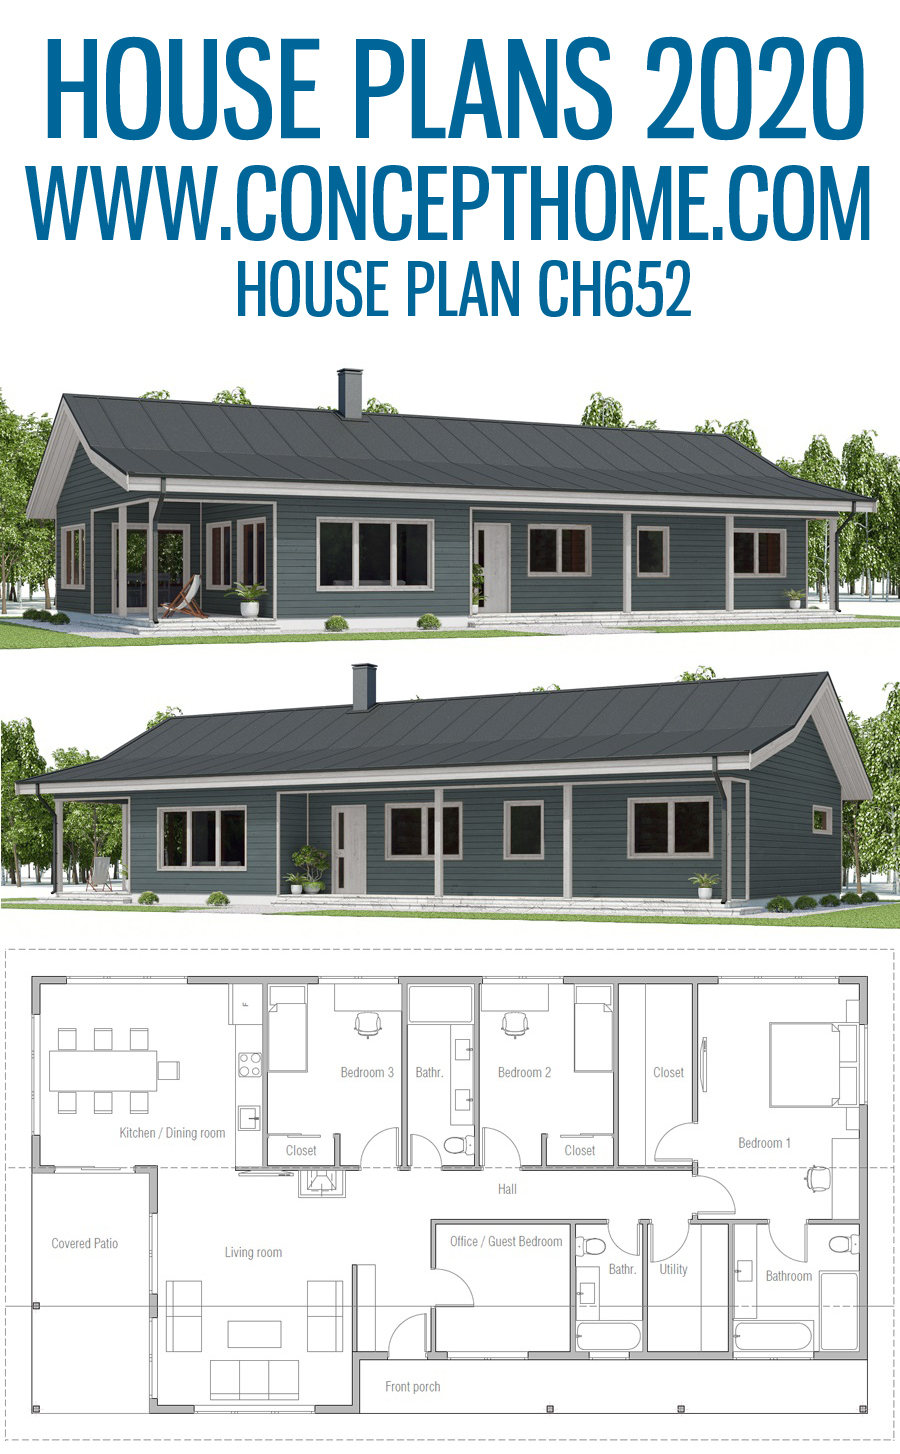 House Plan Ch652 House Plans My House Plans New House Plans